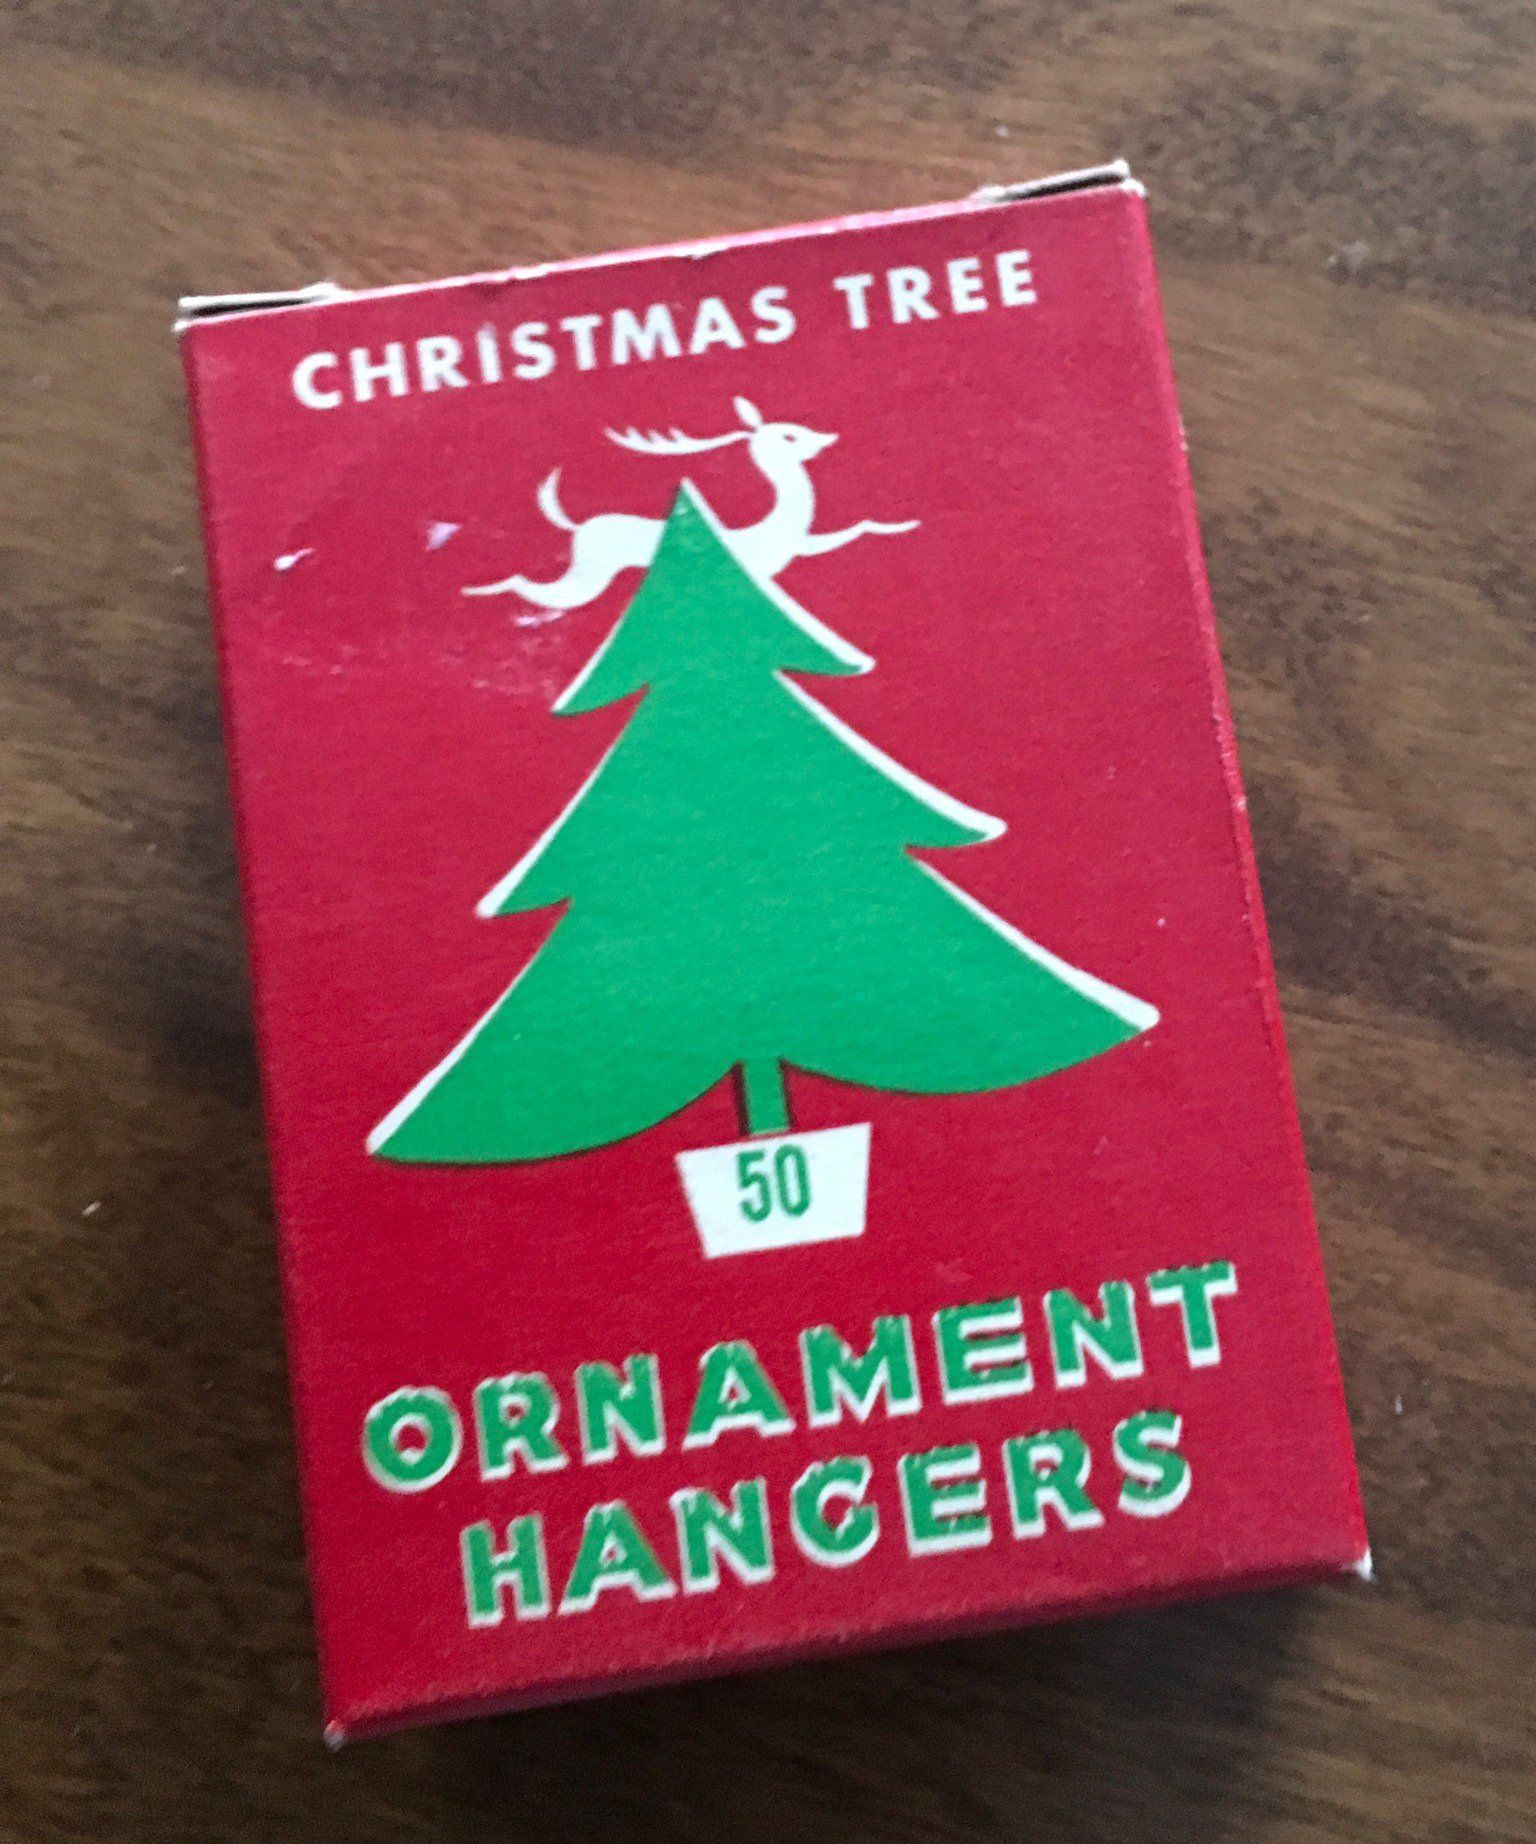 Vintage Box Of Christmas Ornament Hangers 1950s National Tinsel Manufacturing Company Manitowoc Wis Now Closed B Vintage Christmas Tree Vintage Box Christmas